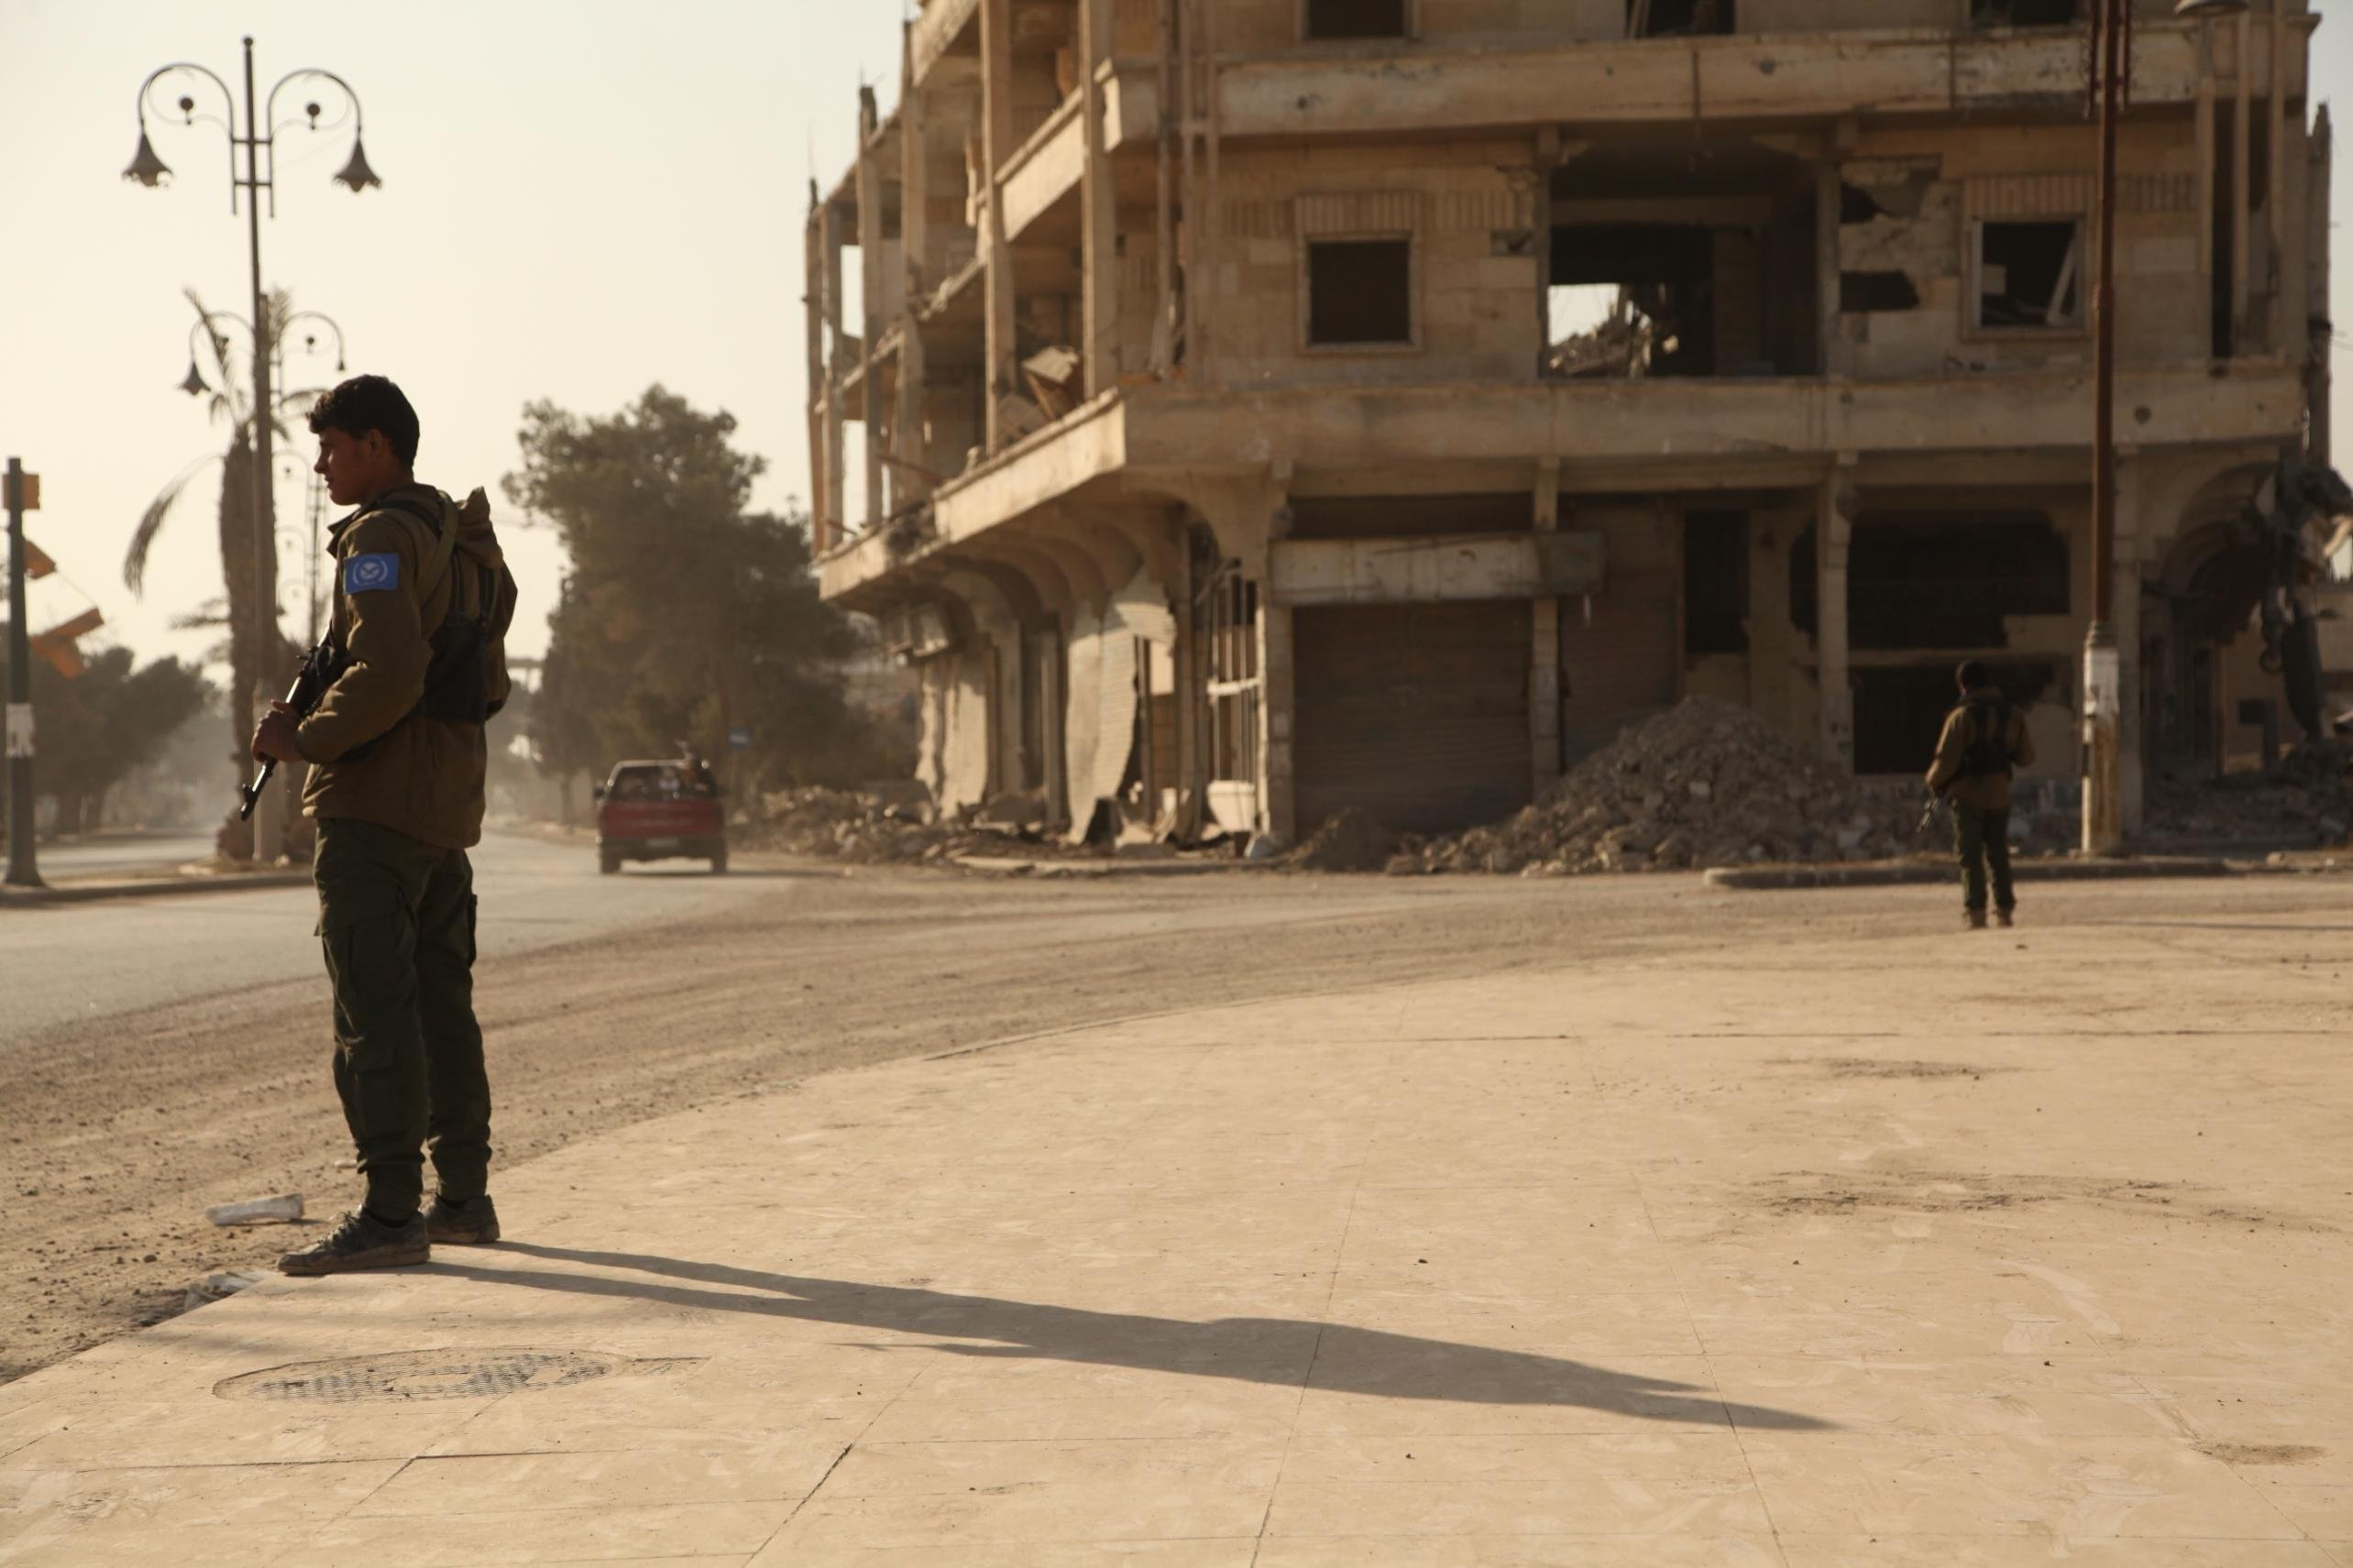 Members of the newly formed RISF or Raqqa Internal Security Force stand guard on a street.